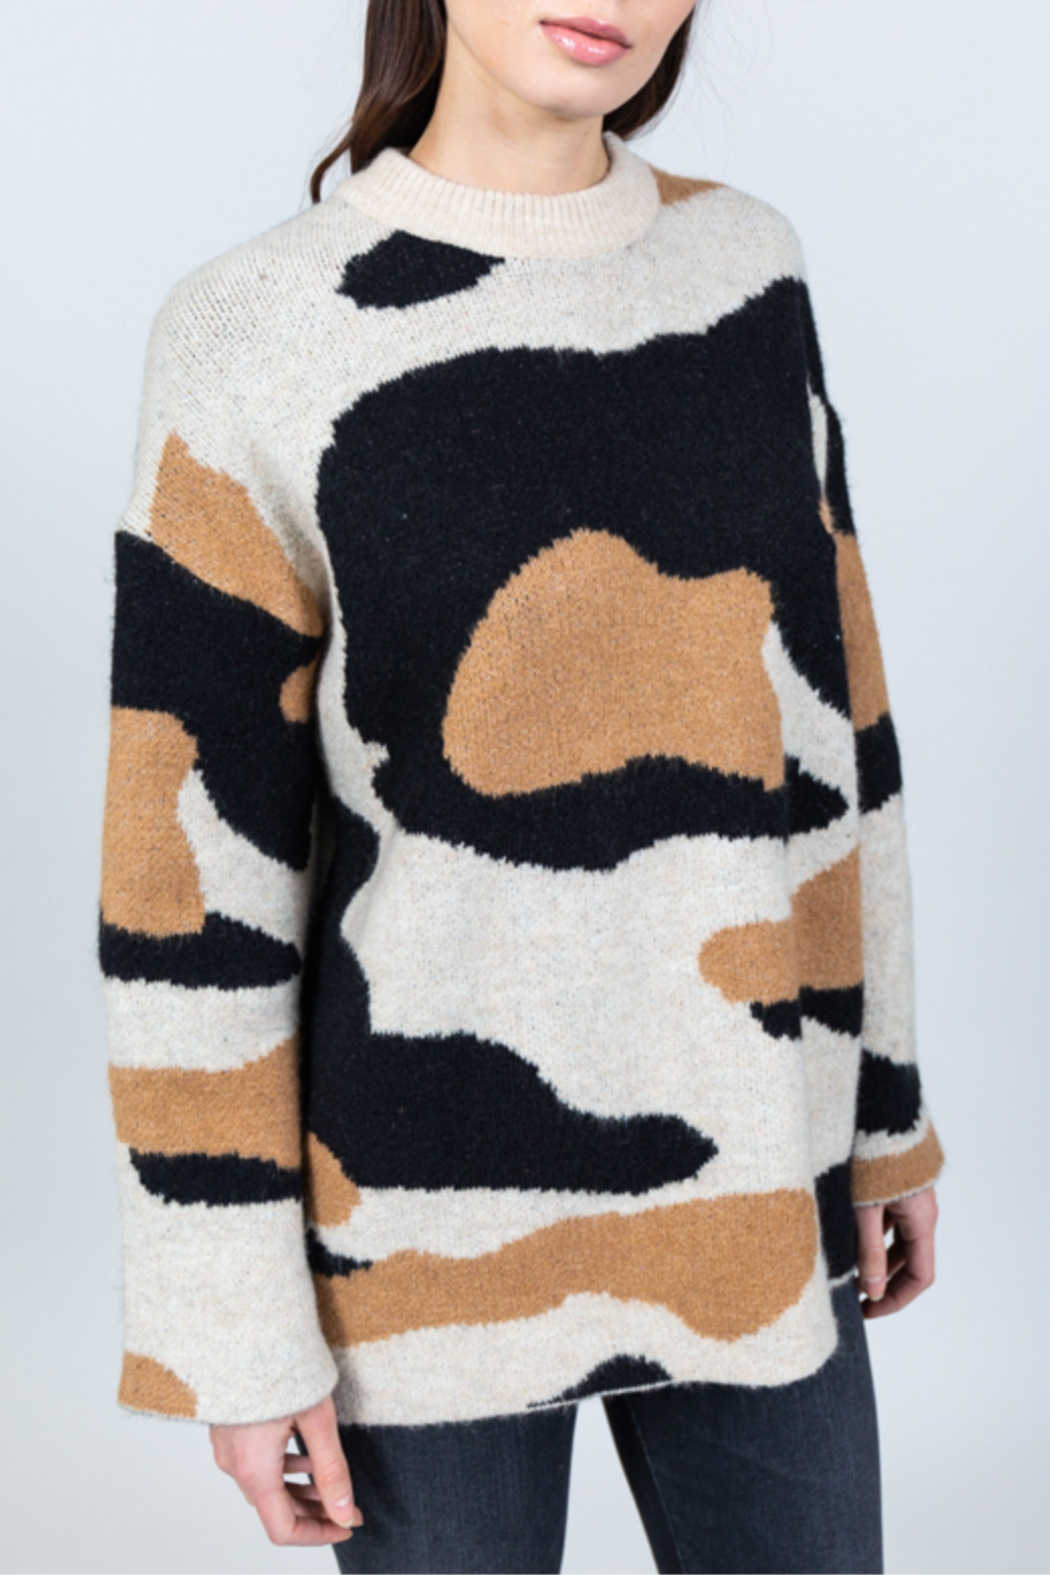 Allison Collection Camo Jacquard Sweater - Main Image